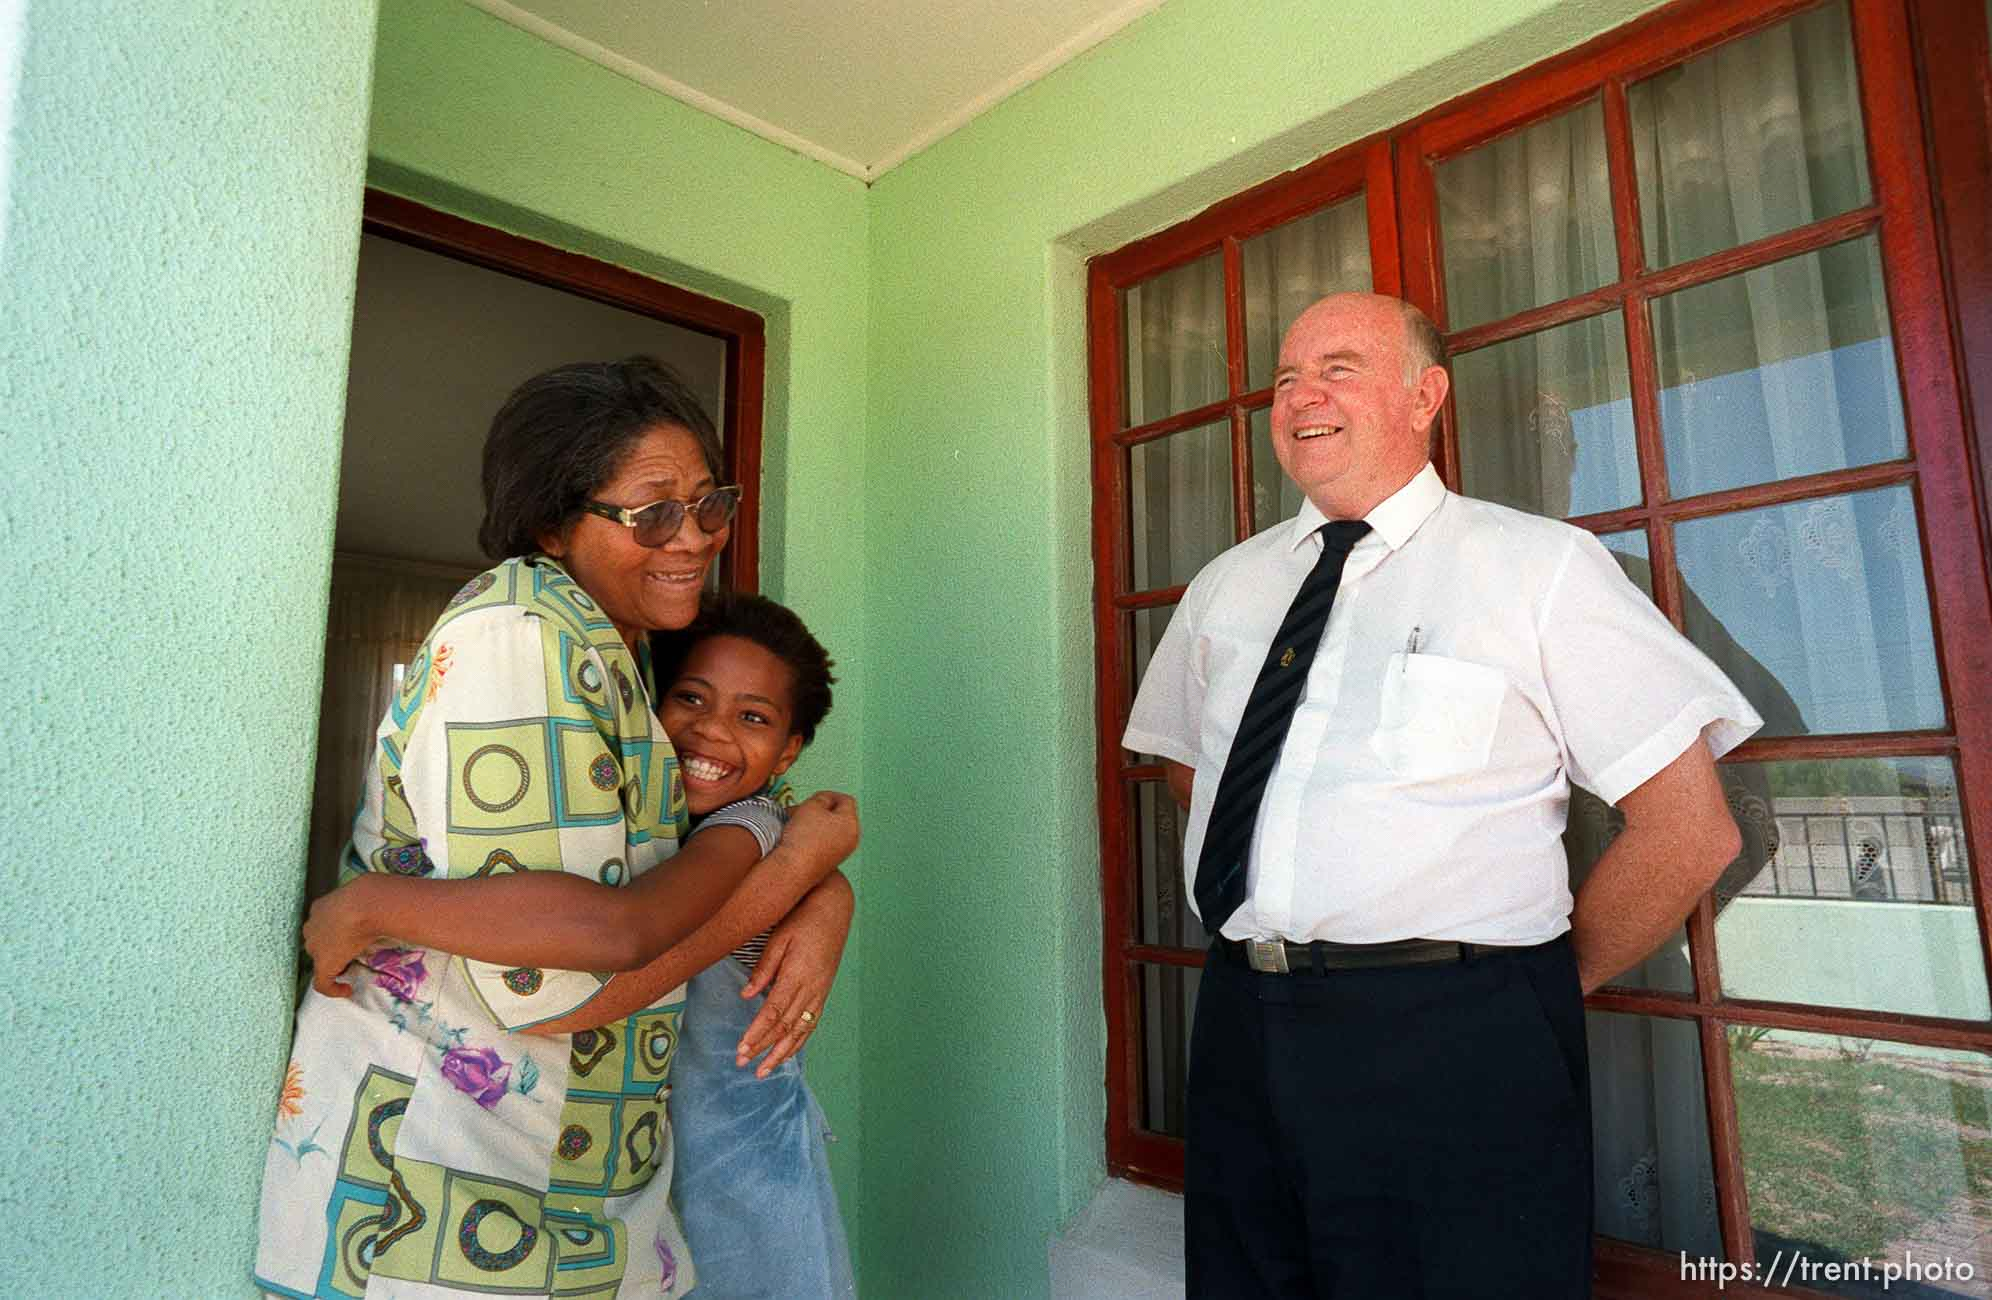 Palesa Smouse hugs her grandmother, Nancy, while Clive Nicholls stands near.